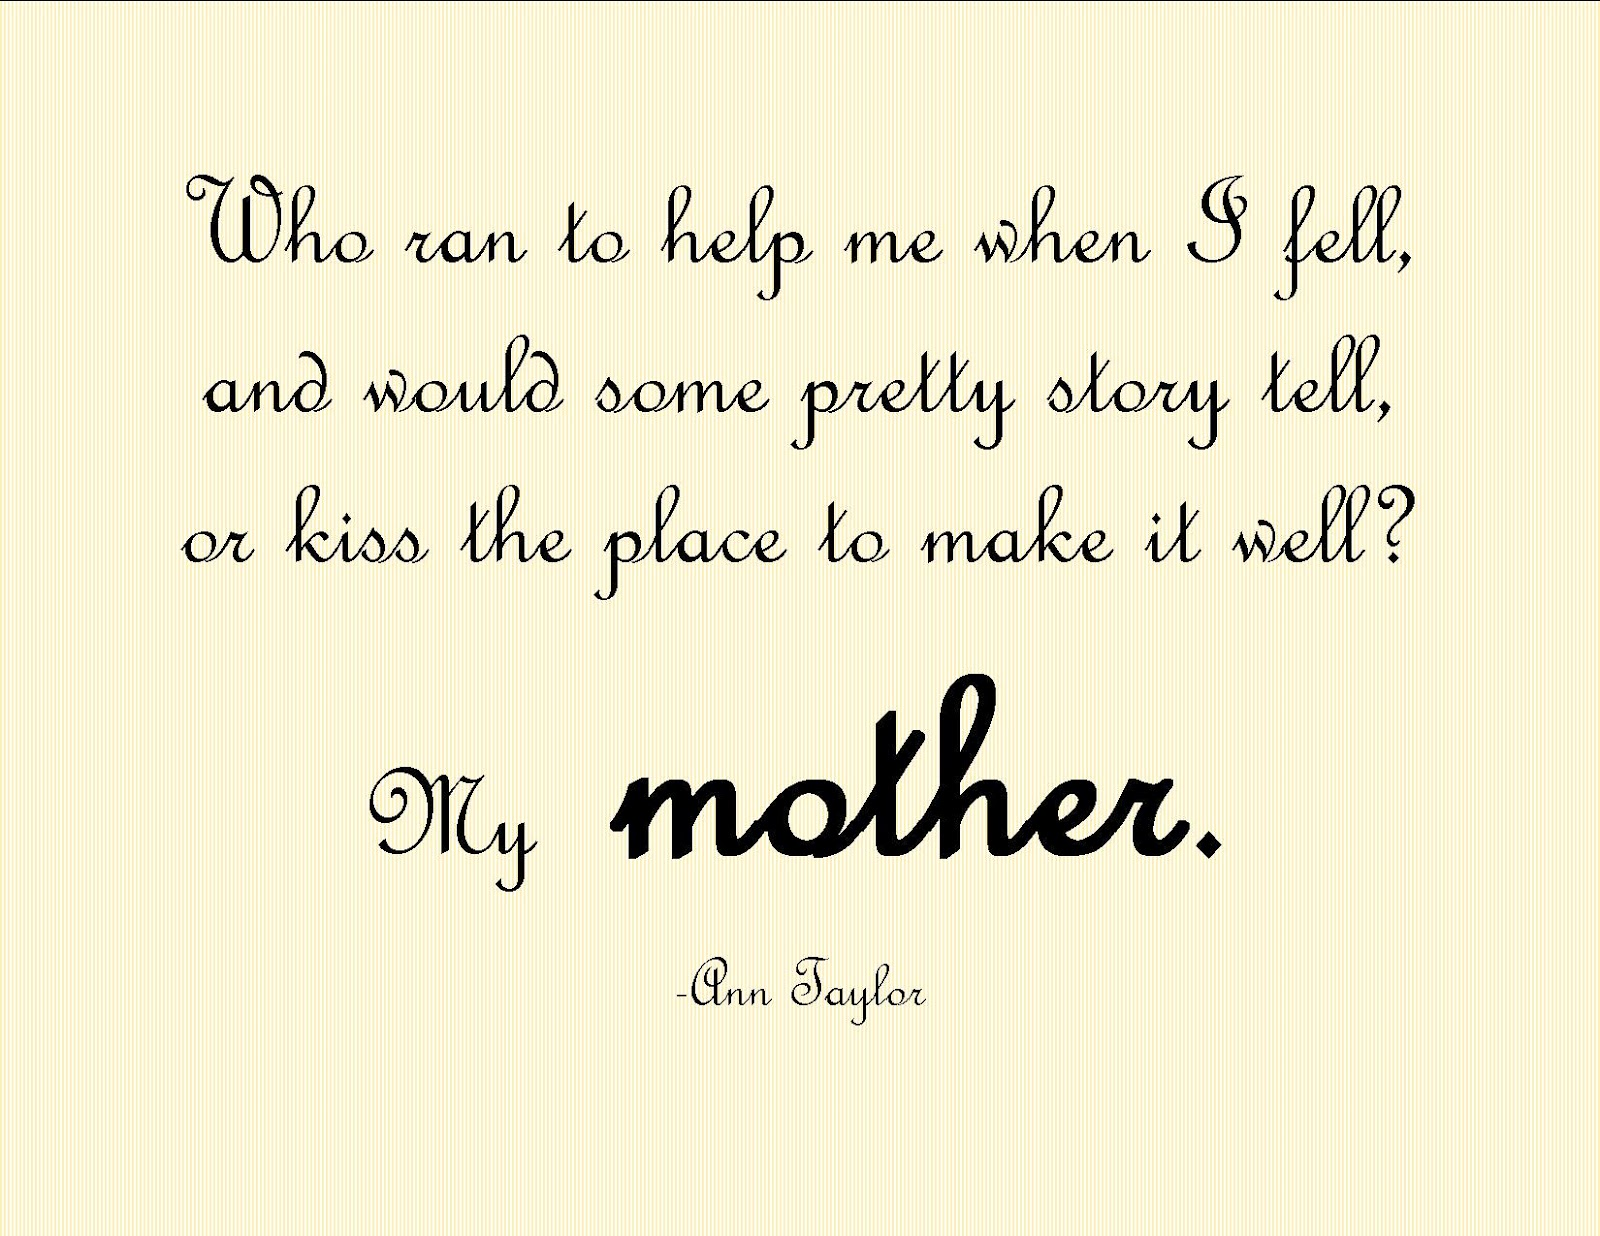 mother quotes Image Credit